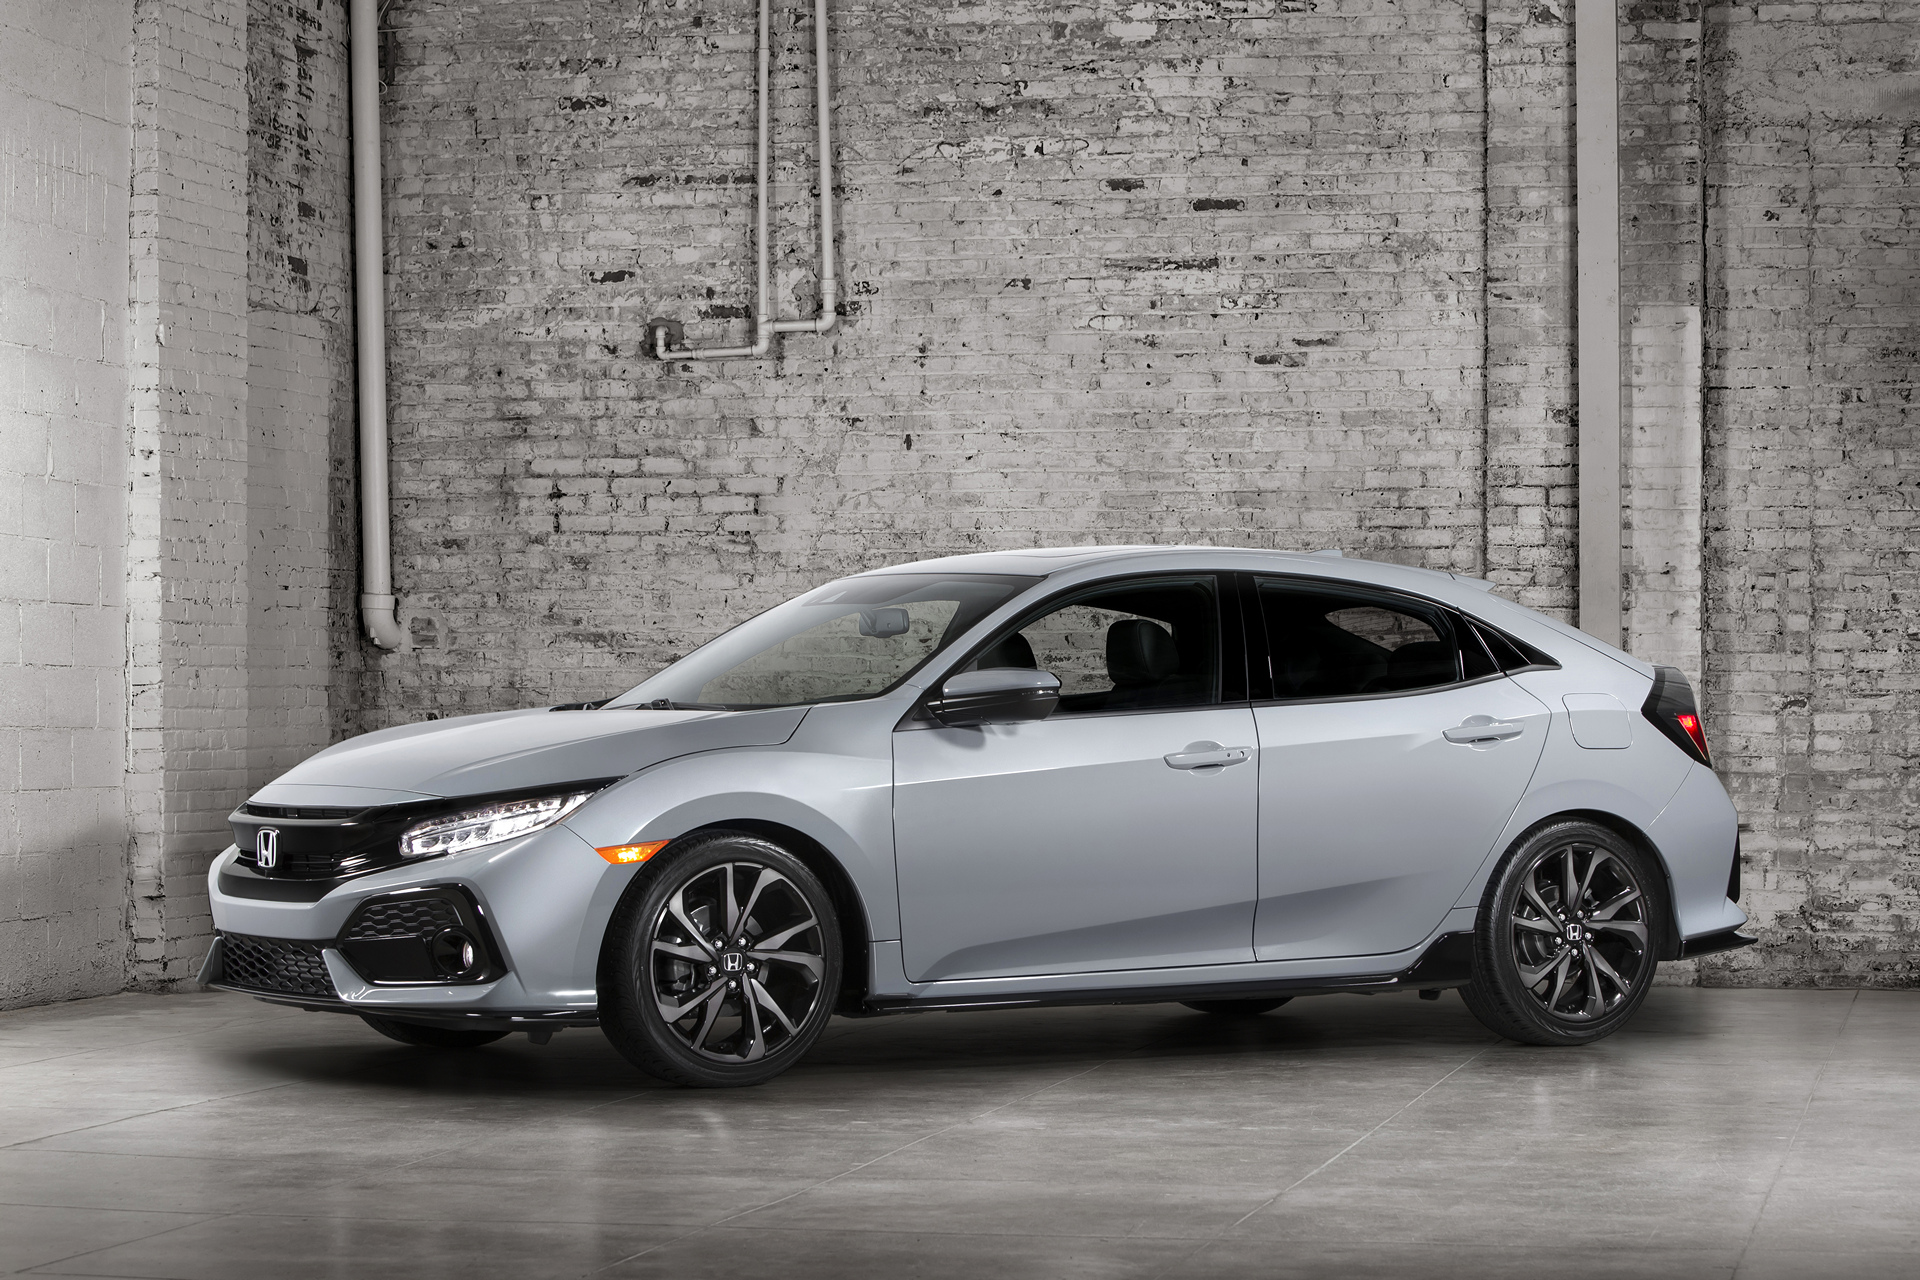 2017 Honda Civic Hatchback © Honda Motor Co., Ltd.